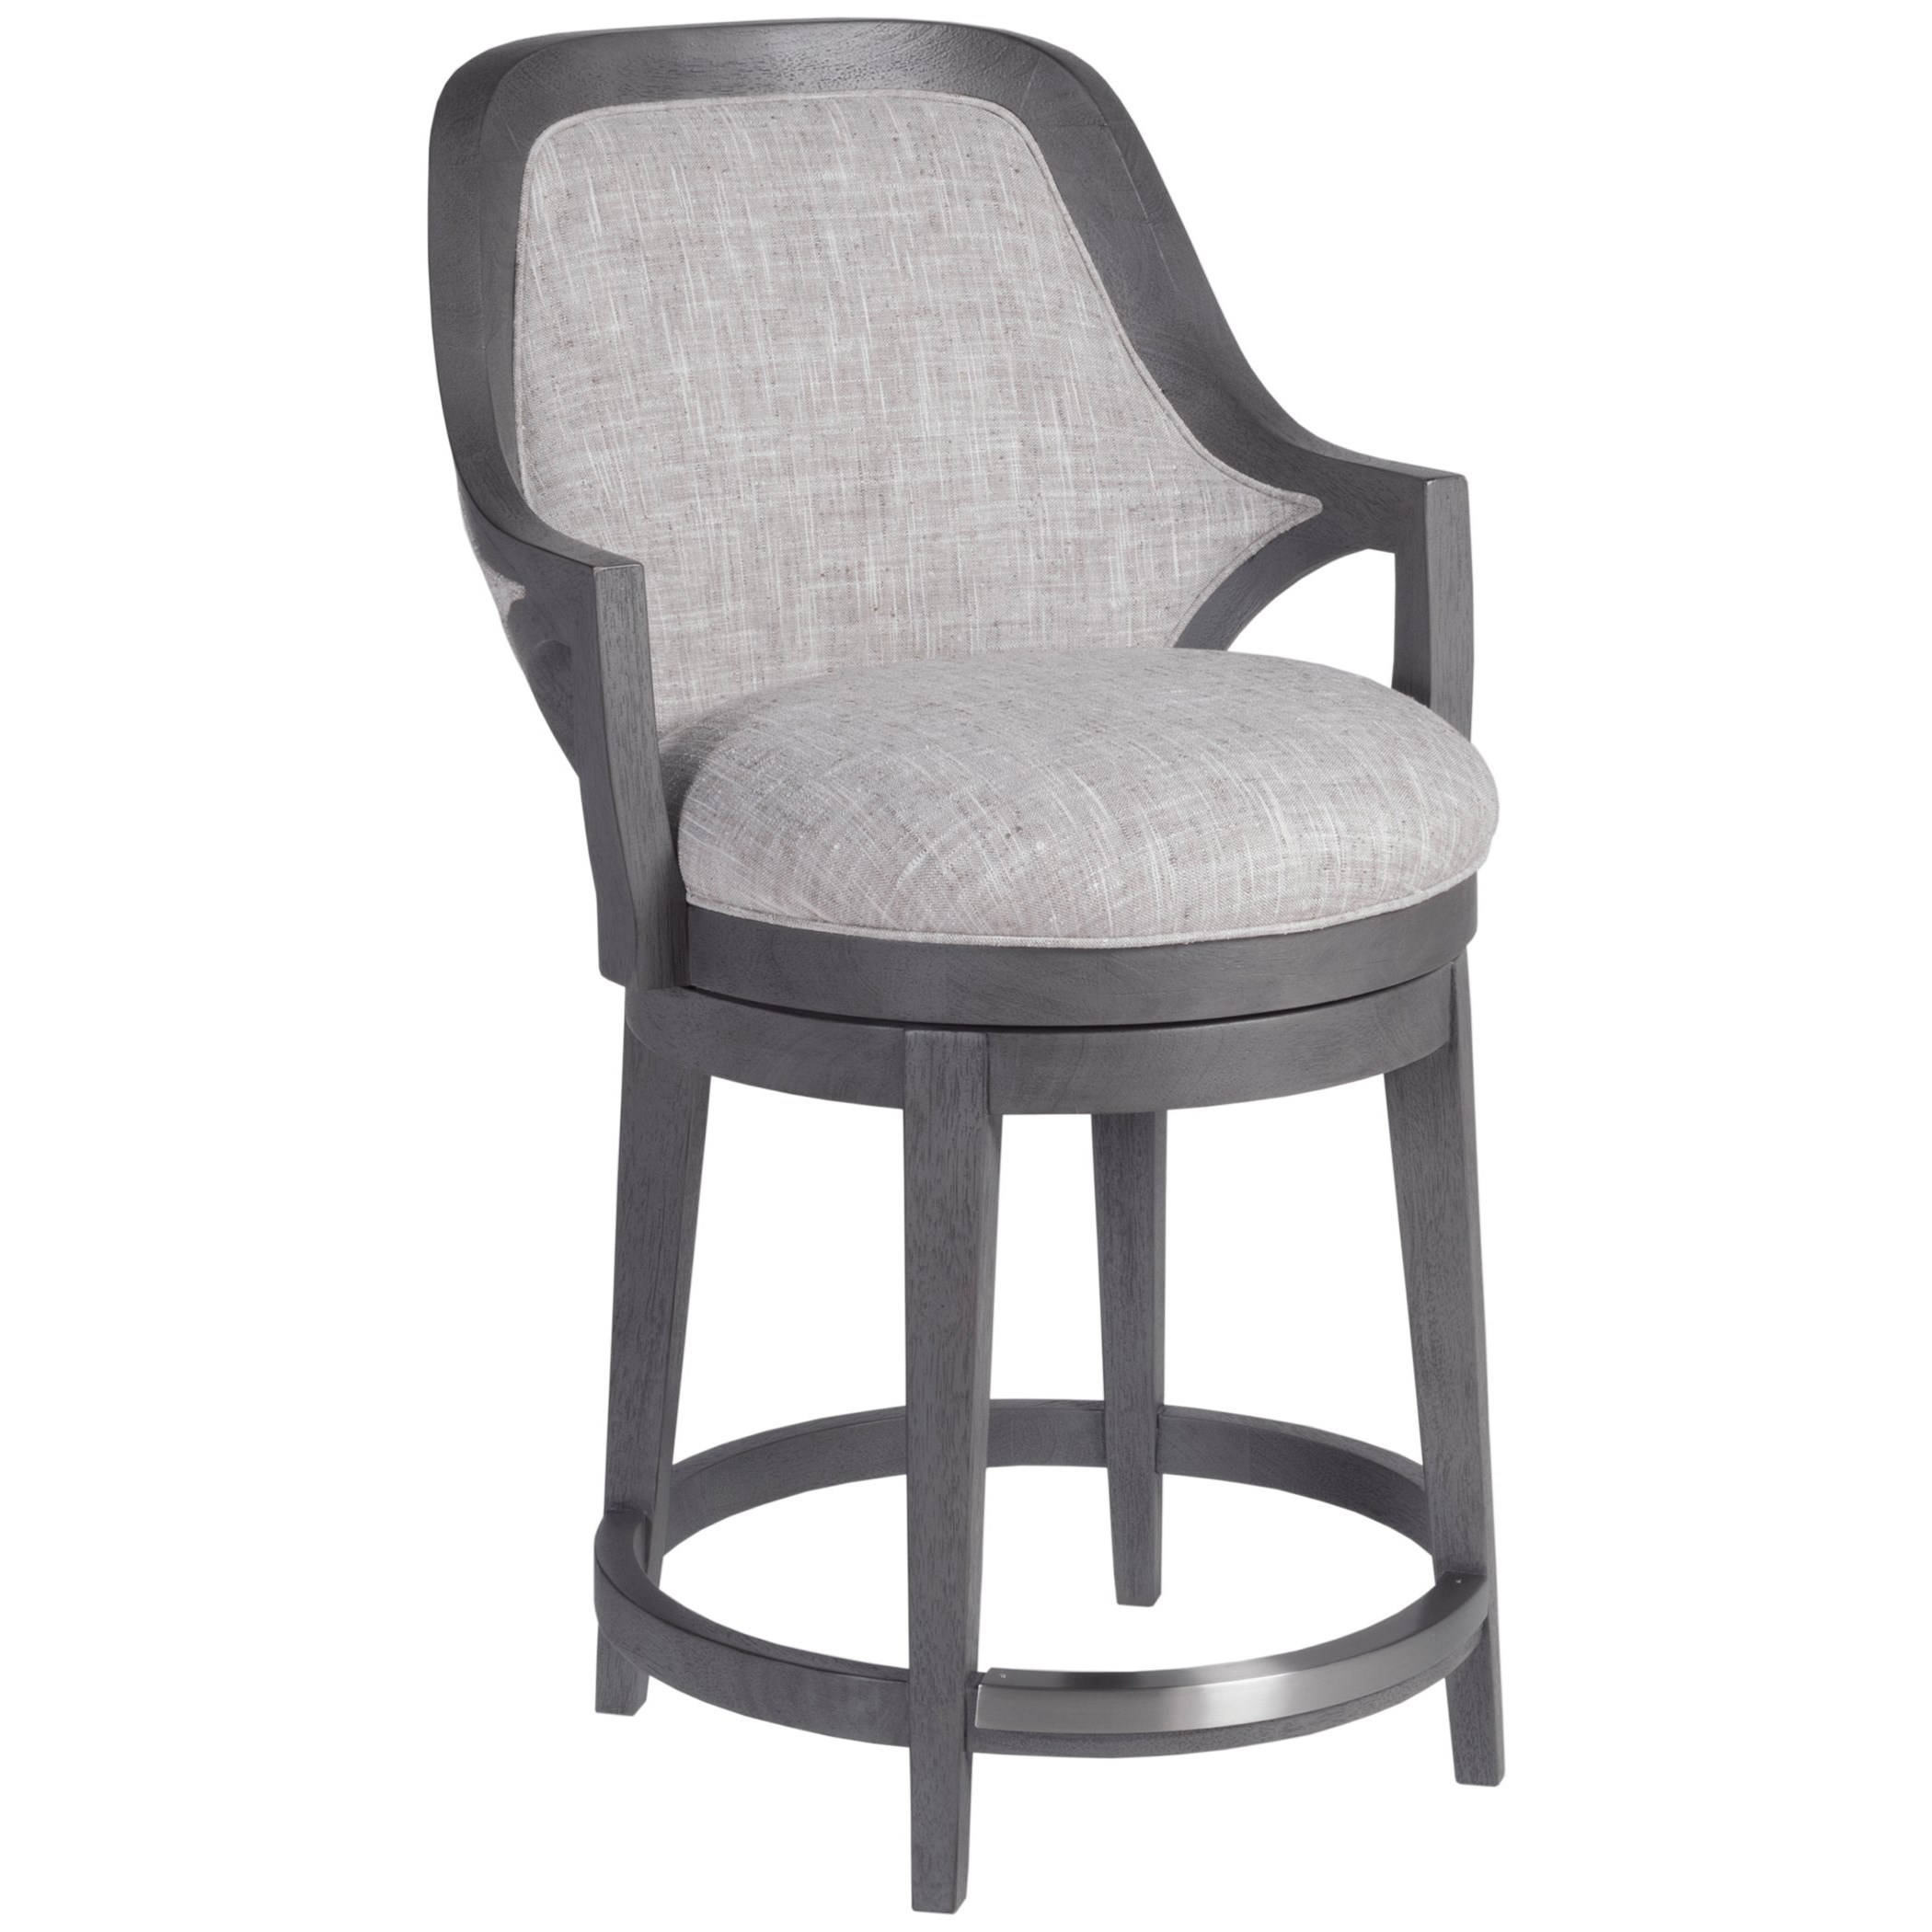 Appellation Upholstered Swivel Counter Stool by Artistica at Baer's Furniture